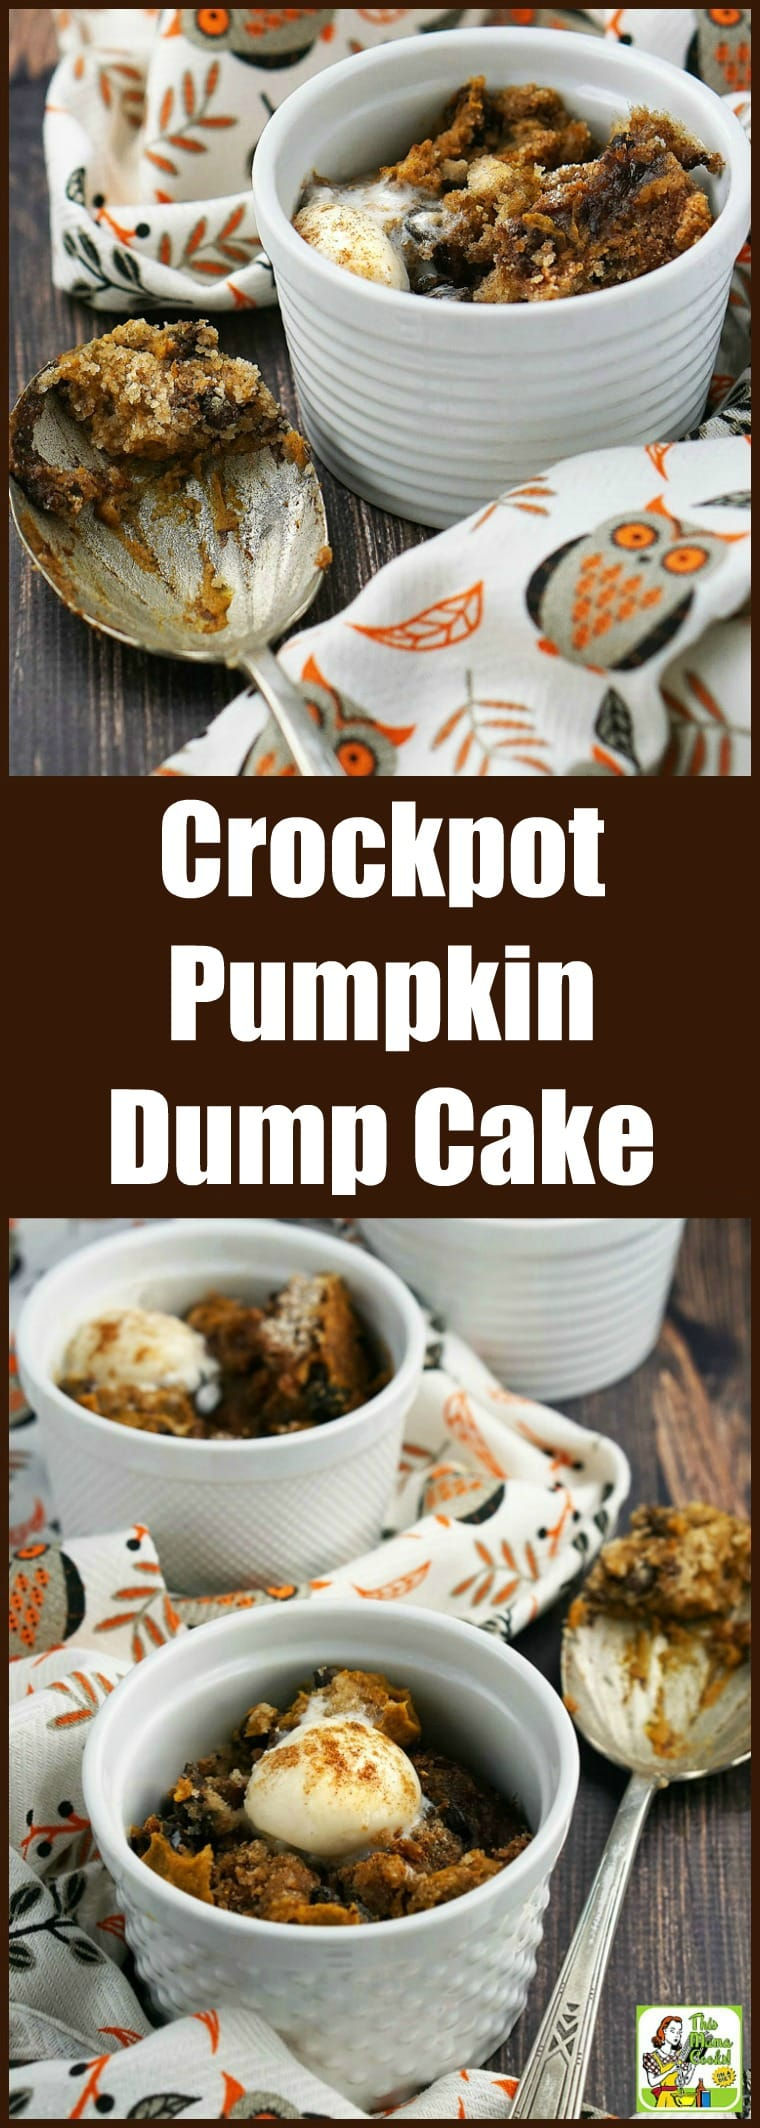 This Crockpot Pumpkin Dump Cake is like a layer of creamy pumpkin mousse topped by a layer of gluten-free spice cake. Quick and easy to make, this slow cooker pumpkin dump cake is gluten-free, dairy-free, and vegan! #recipe #easy #recipeoftheday #healthyrecipes #glutenfree #easyrecipes #pumpkindessert #pumpkinrecipe #pumpkin #halloween #thanksgiving #dessert #dessertrecipes #slowcooker #crockpot #vegan #veganfood #veganrecipes #dumpcake